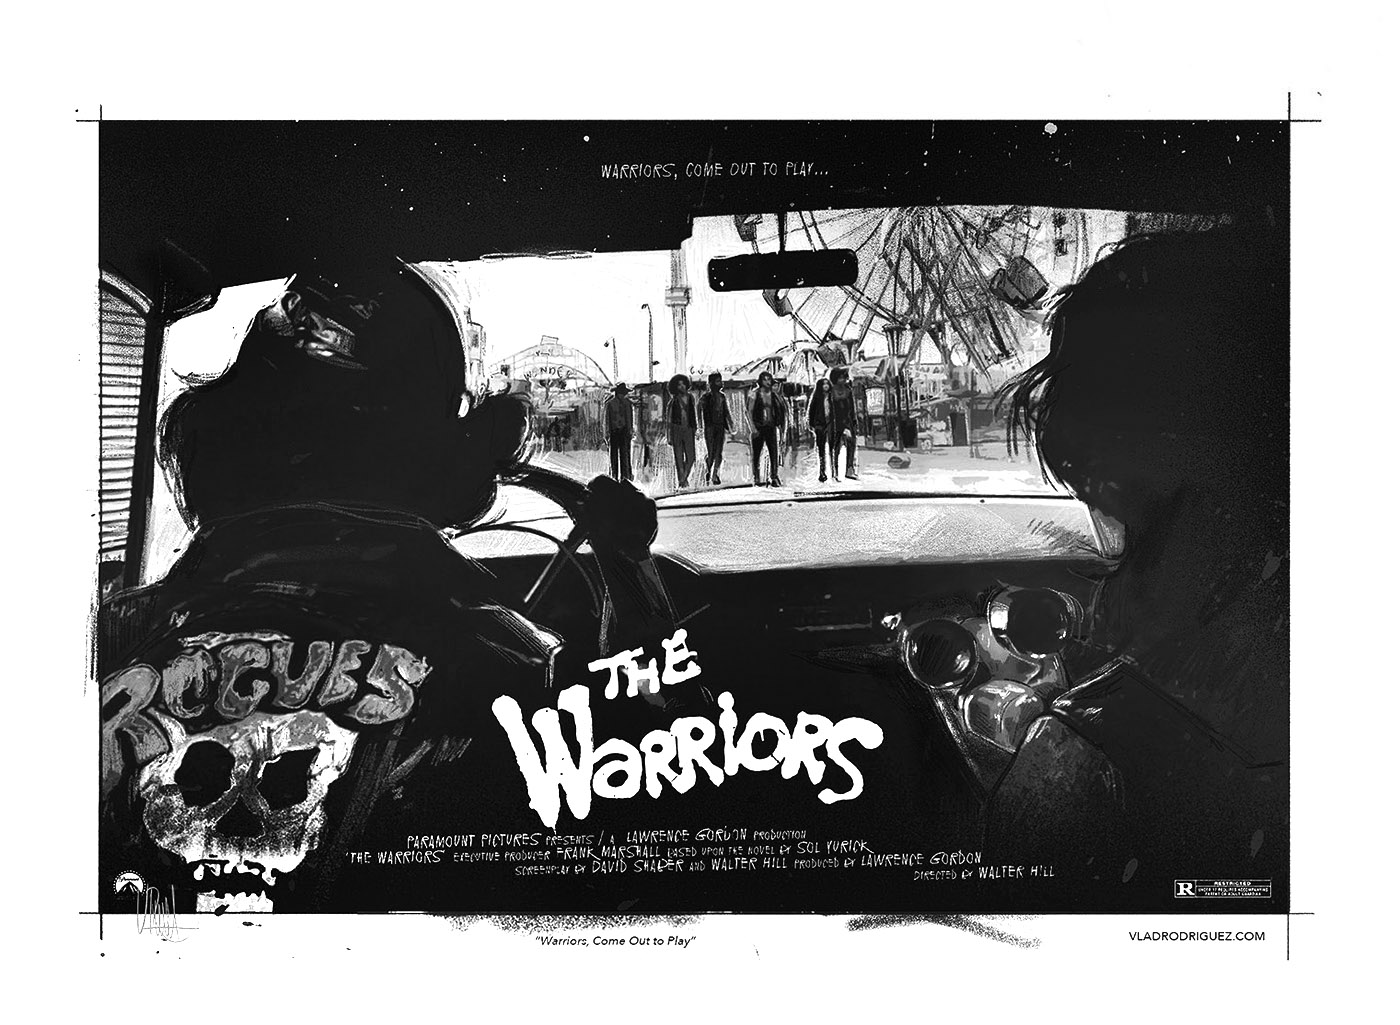 """Final Concept (Interior view from the car) """"We Figure We're Home"""" Inspired by 'The Warrios' Film (1,979)"""